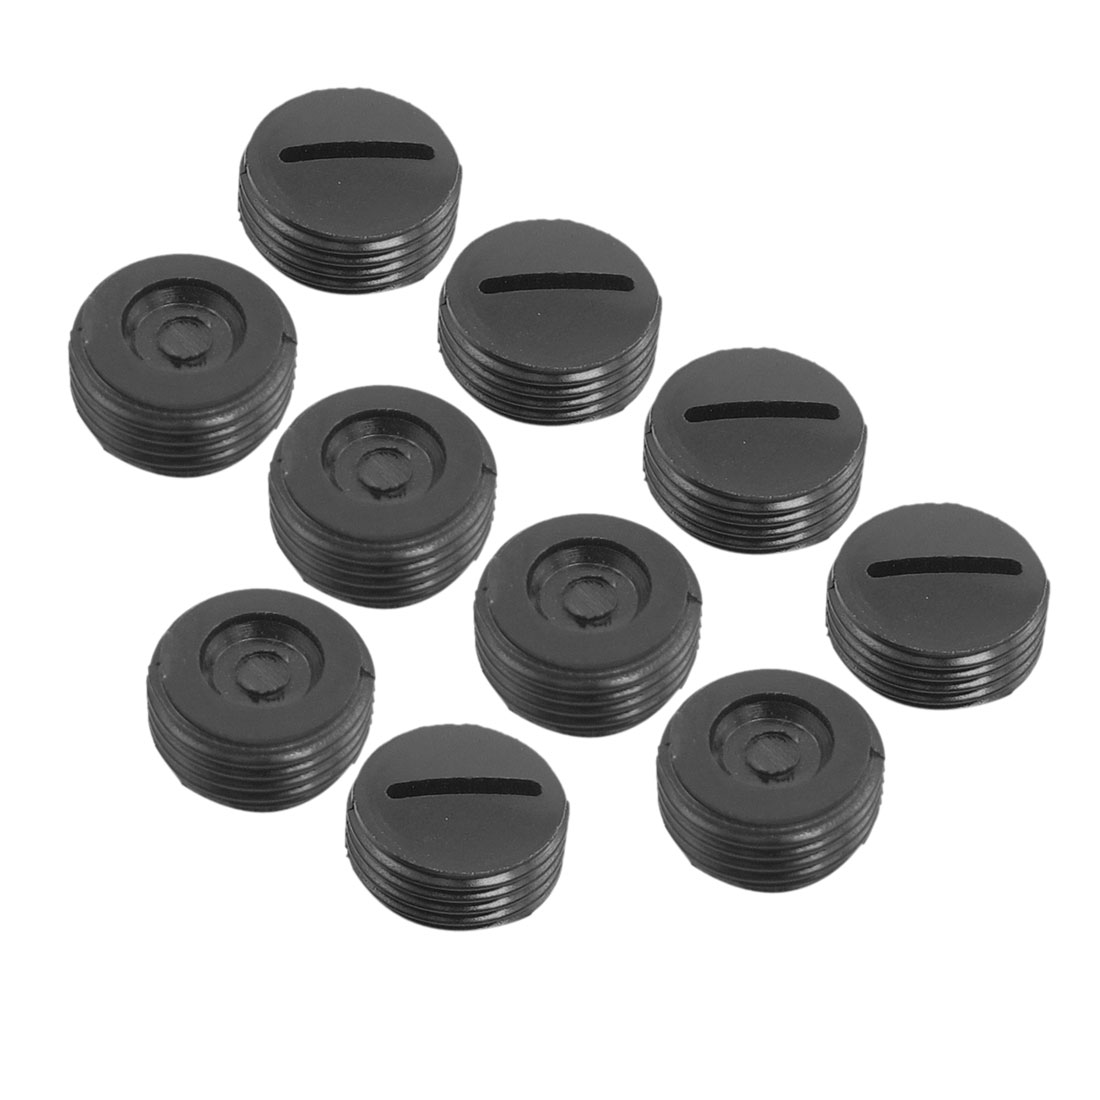 10 Pcs 13mm Diameter Thread Carbon Brush Holder Back Cap for Dragon 26